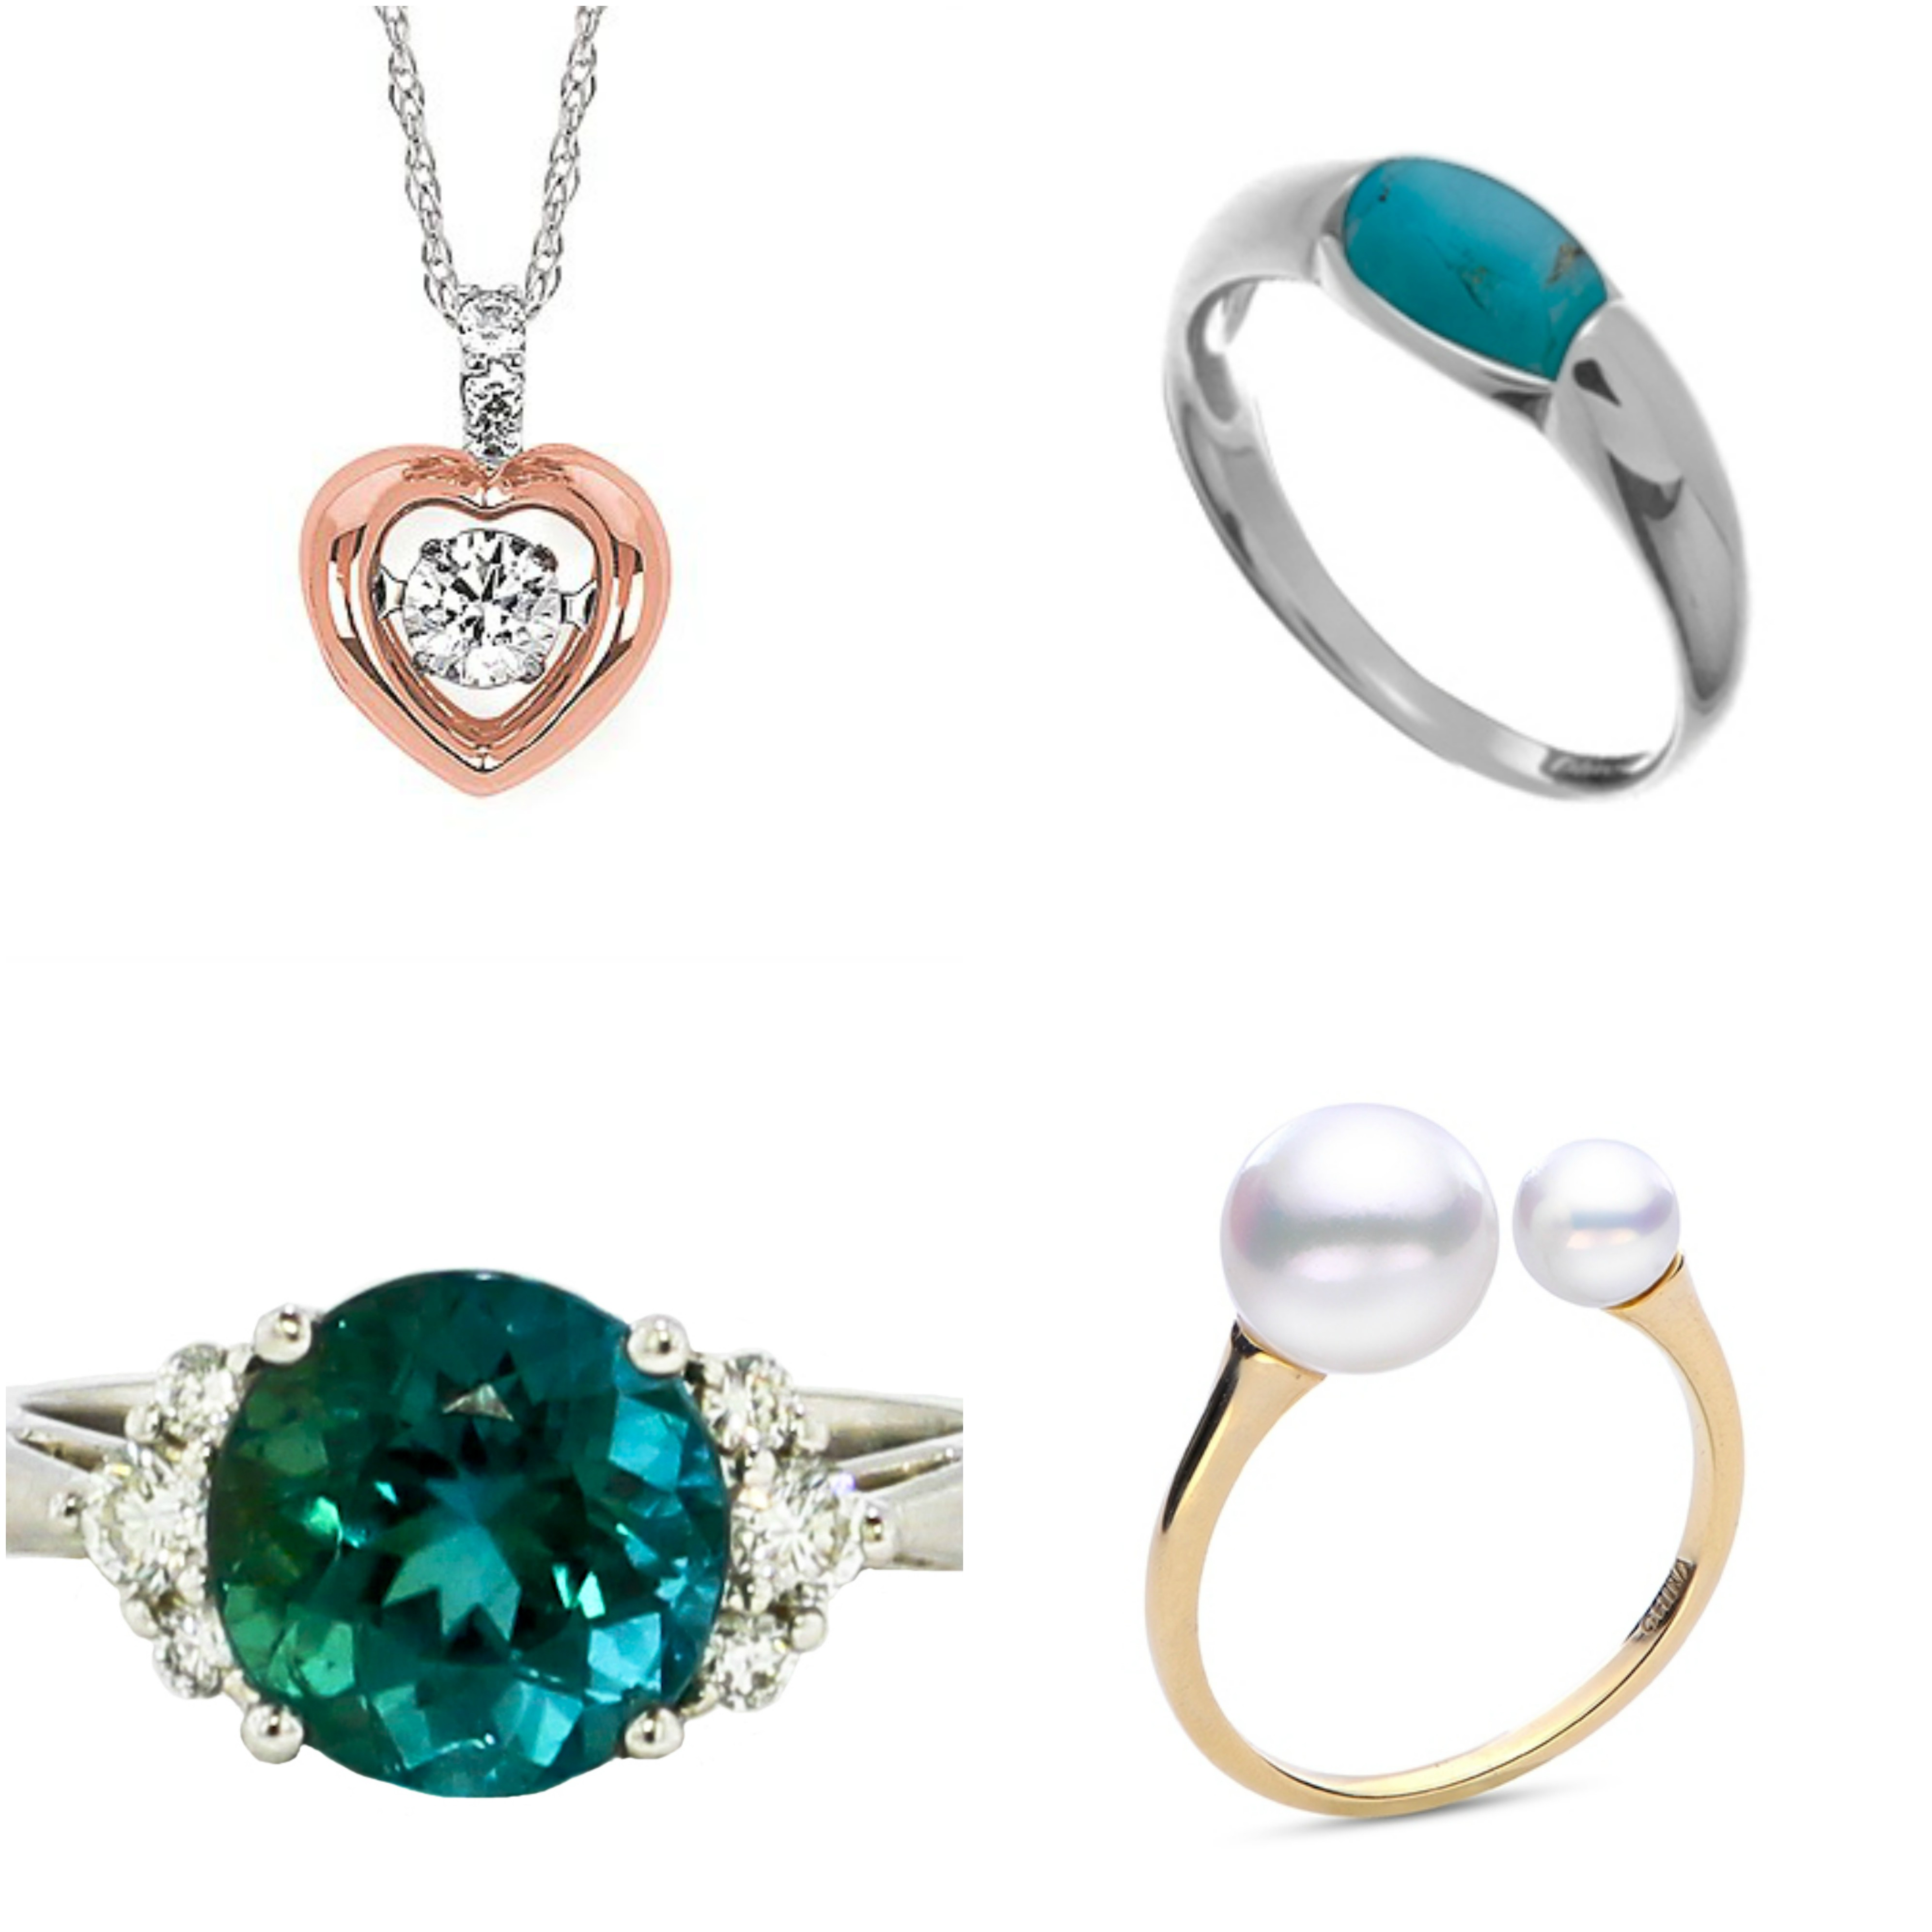 Staff Tip of the Month: Environmentally Safe Ways to Clean Your Jewelry